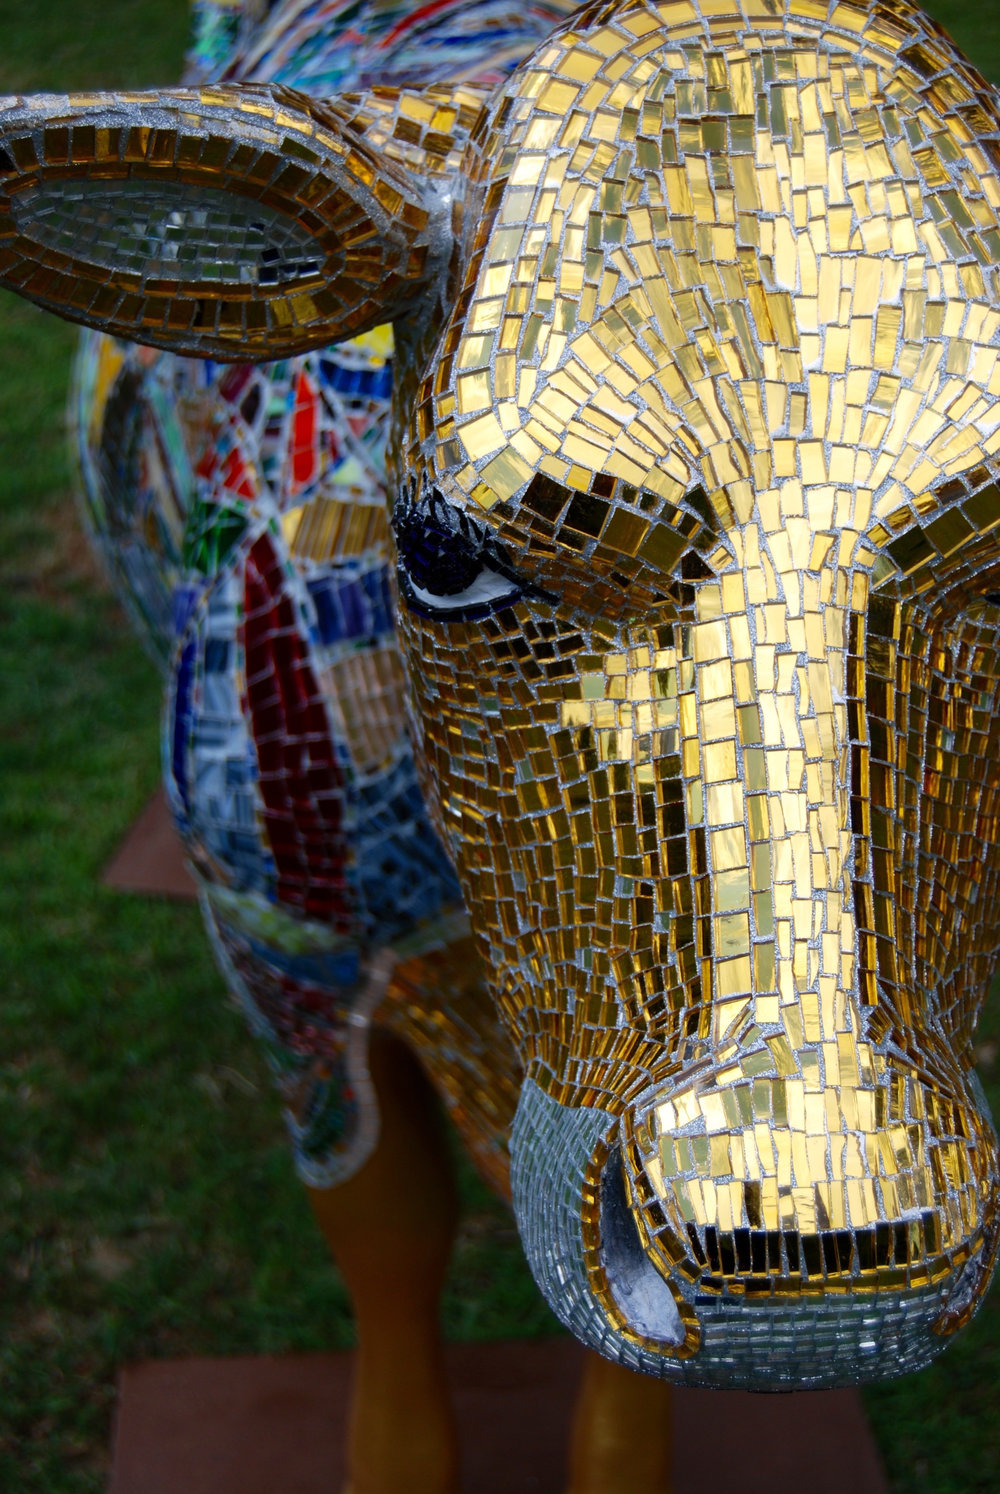 HOLY COW_ART GLASS MOSAIC SCULPTURE_SHELITA BIRCHETT BENASH